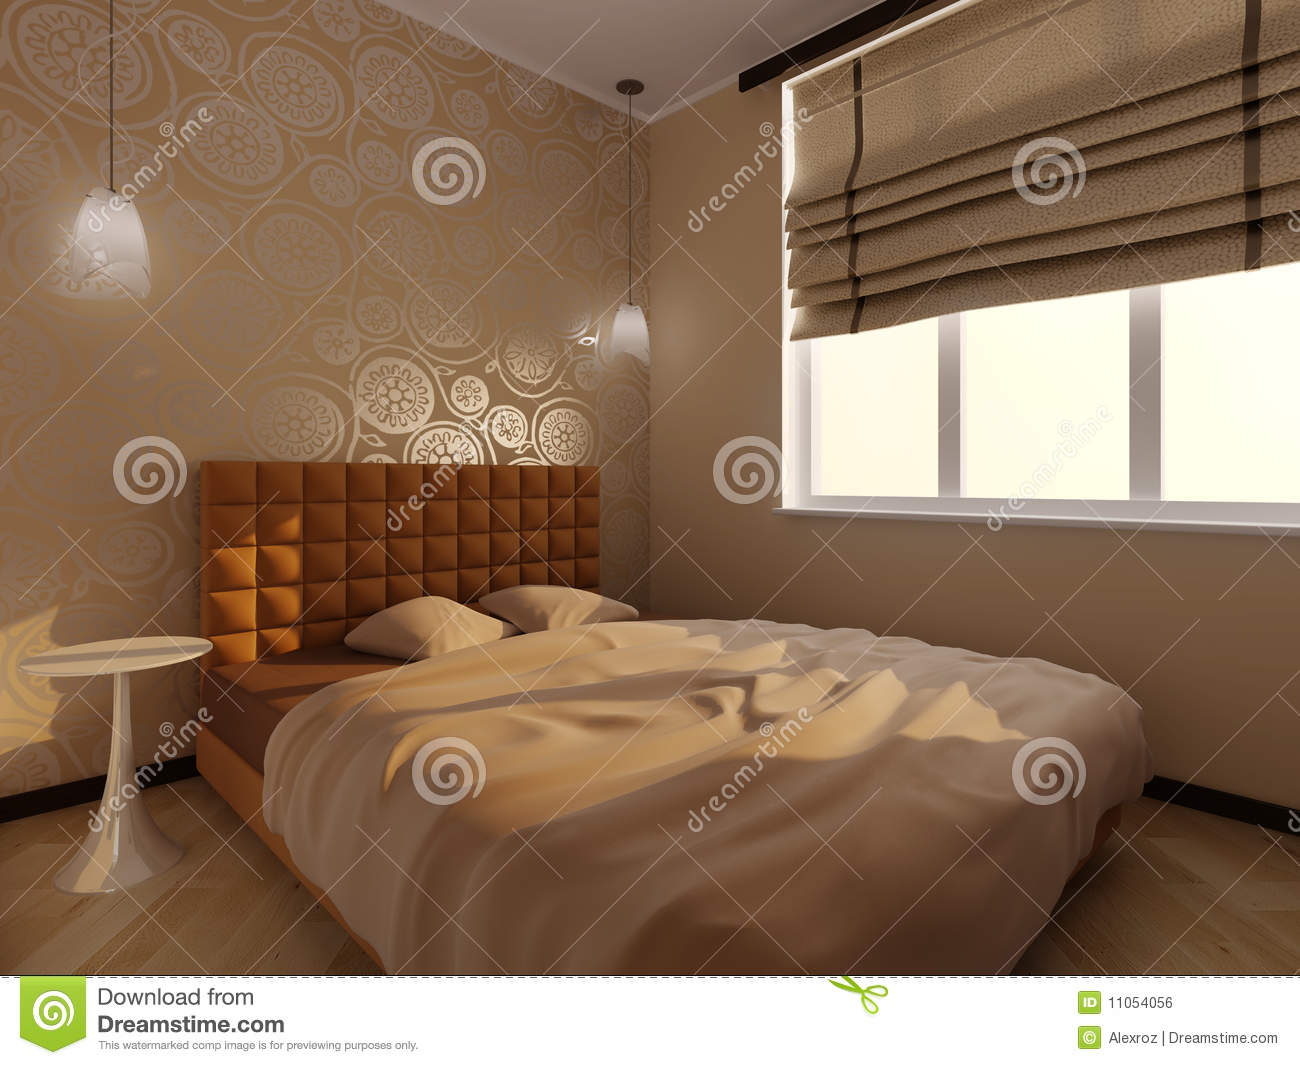 Badroom royalty free stock image image 11054056 - Bad room pic ...